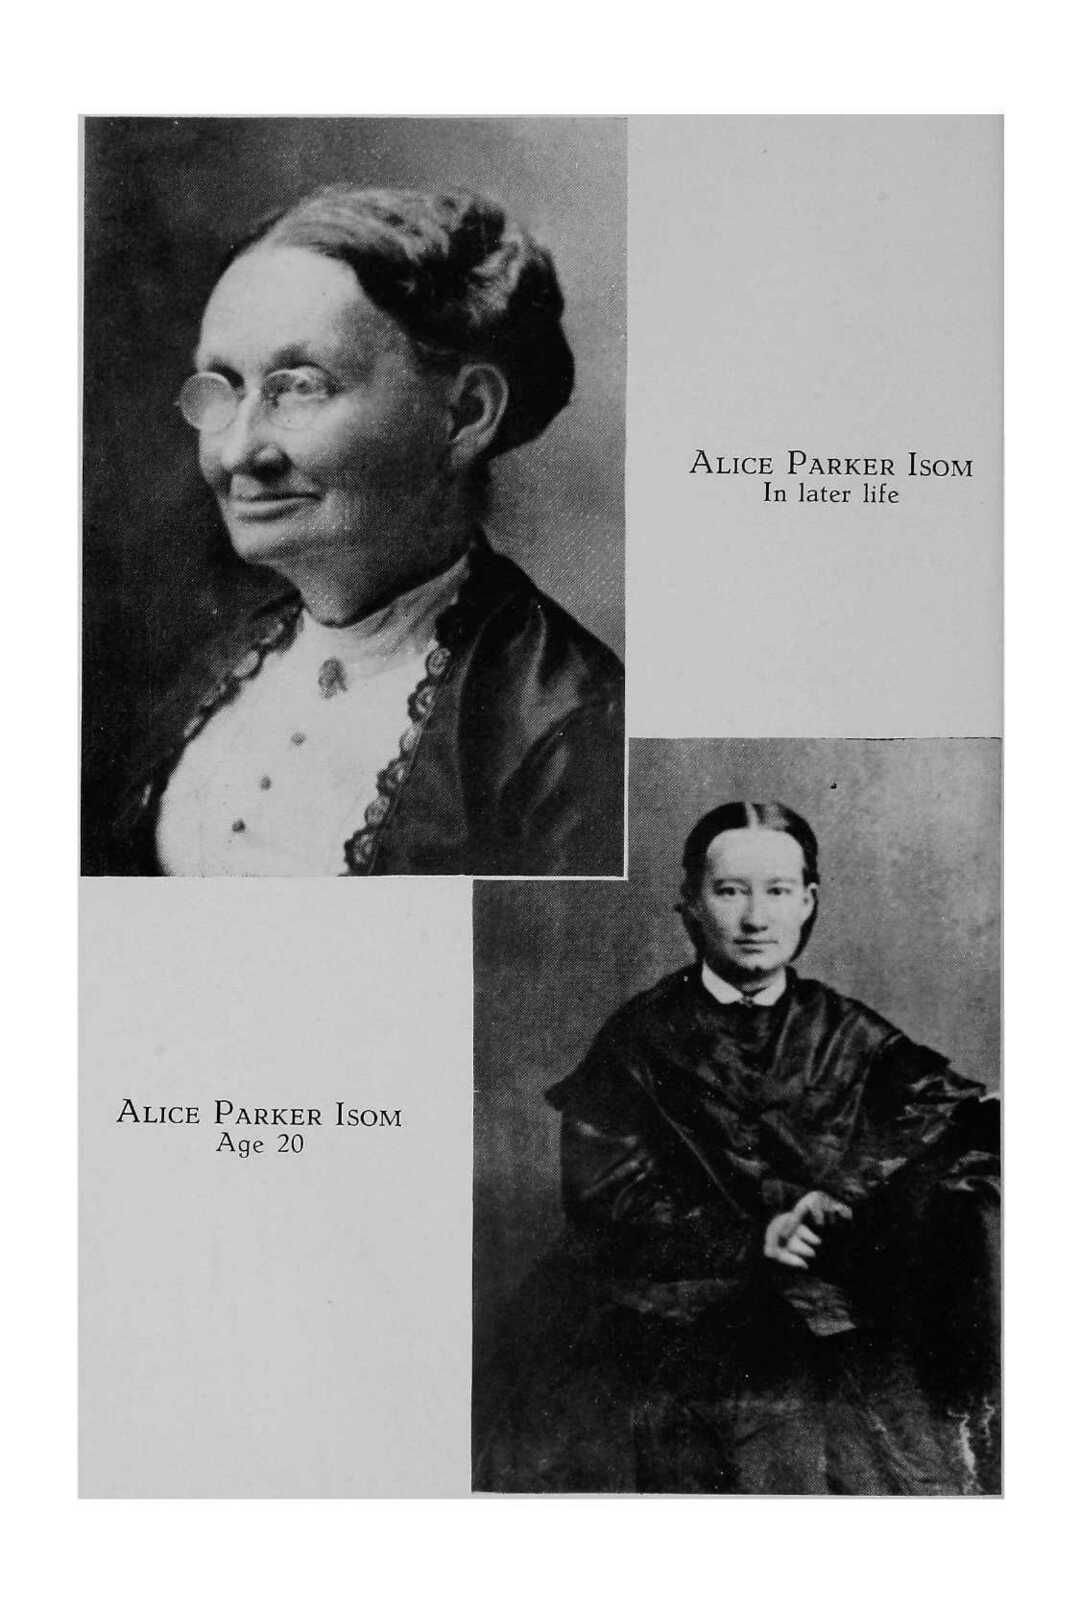 Page 68 of Memoirs of Alice Parker Isom